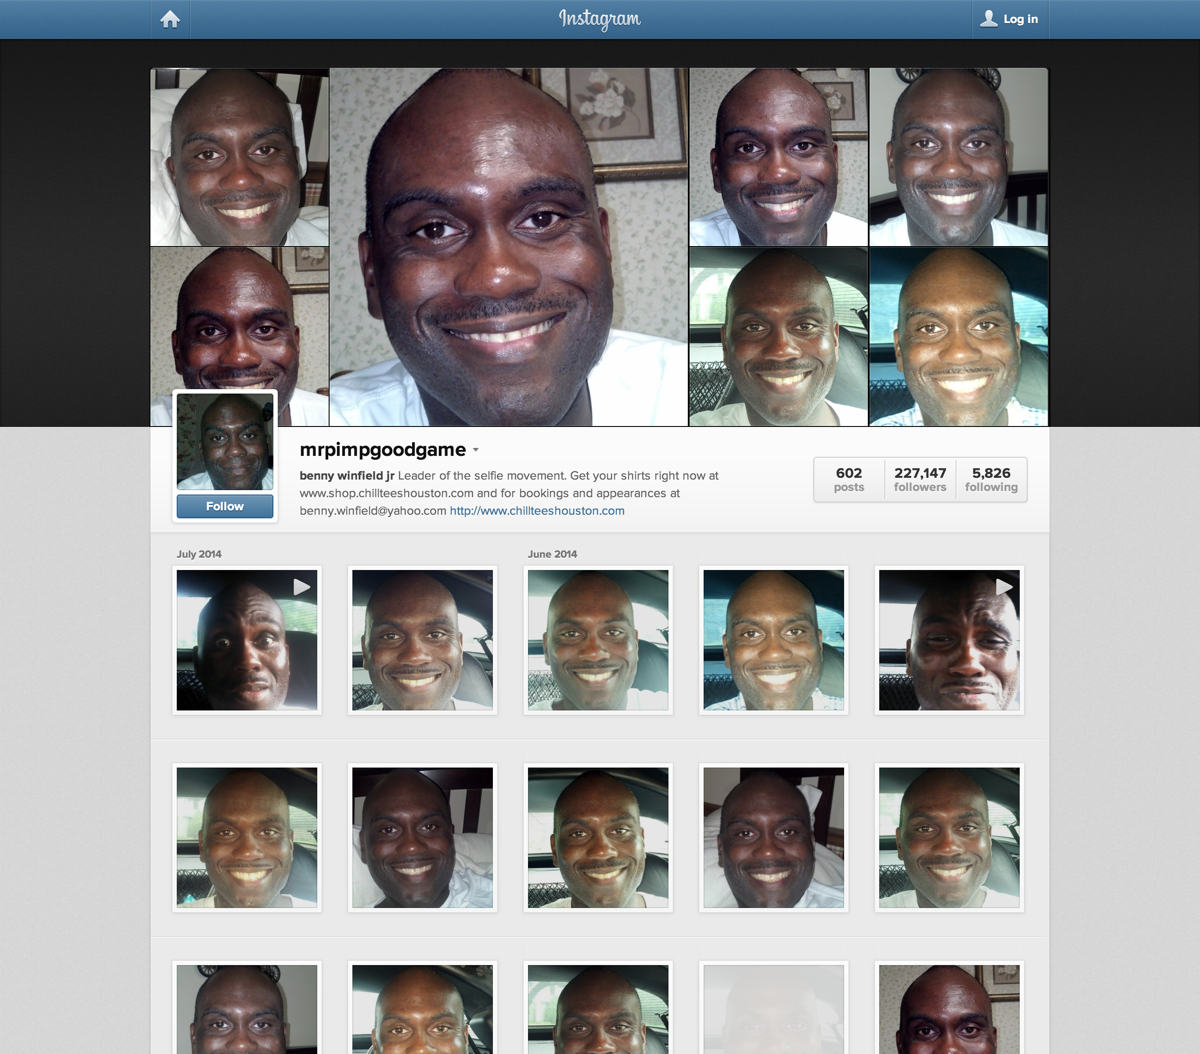 mrpimpgoodgame on Instagram (20140703)